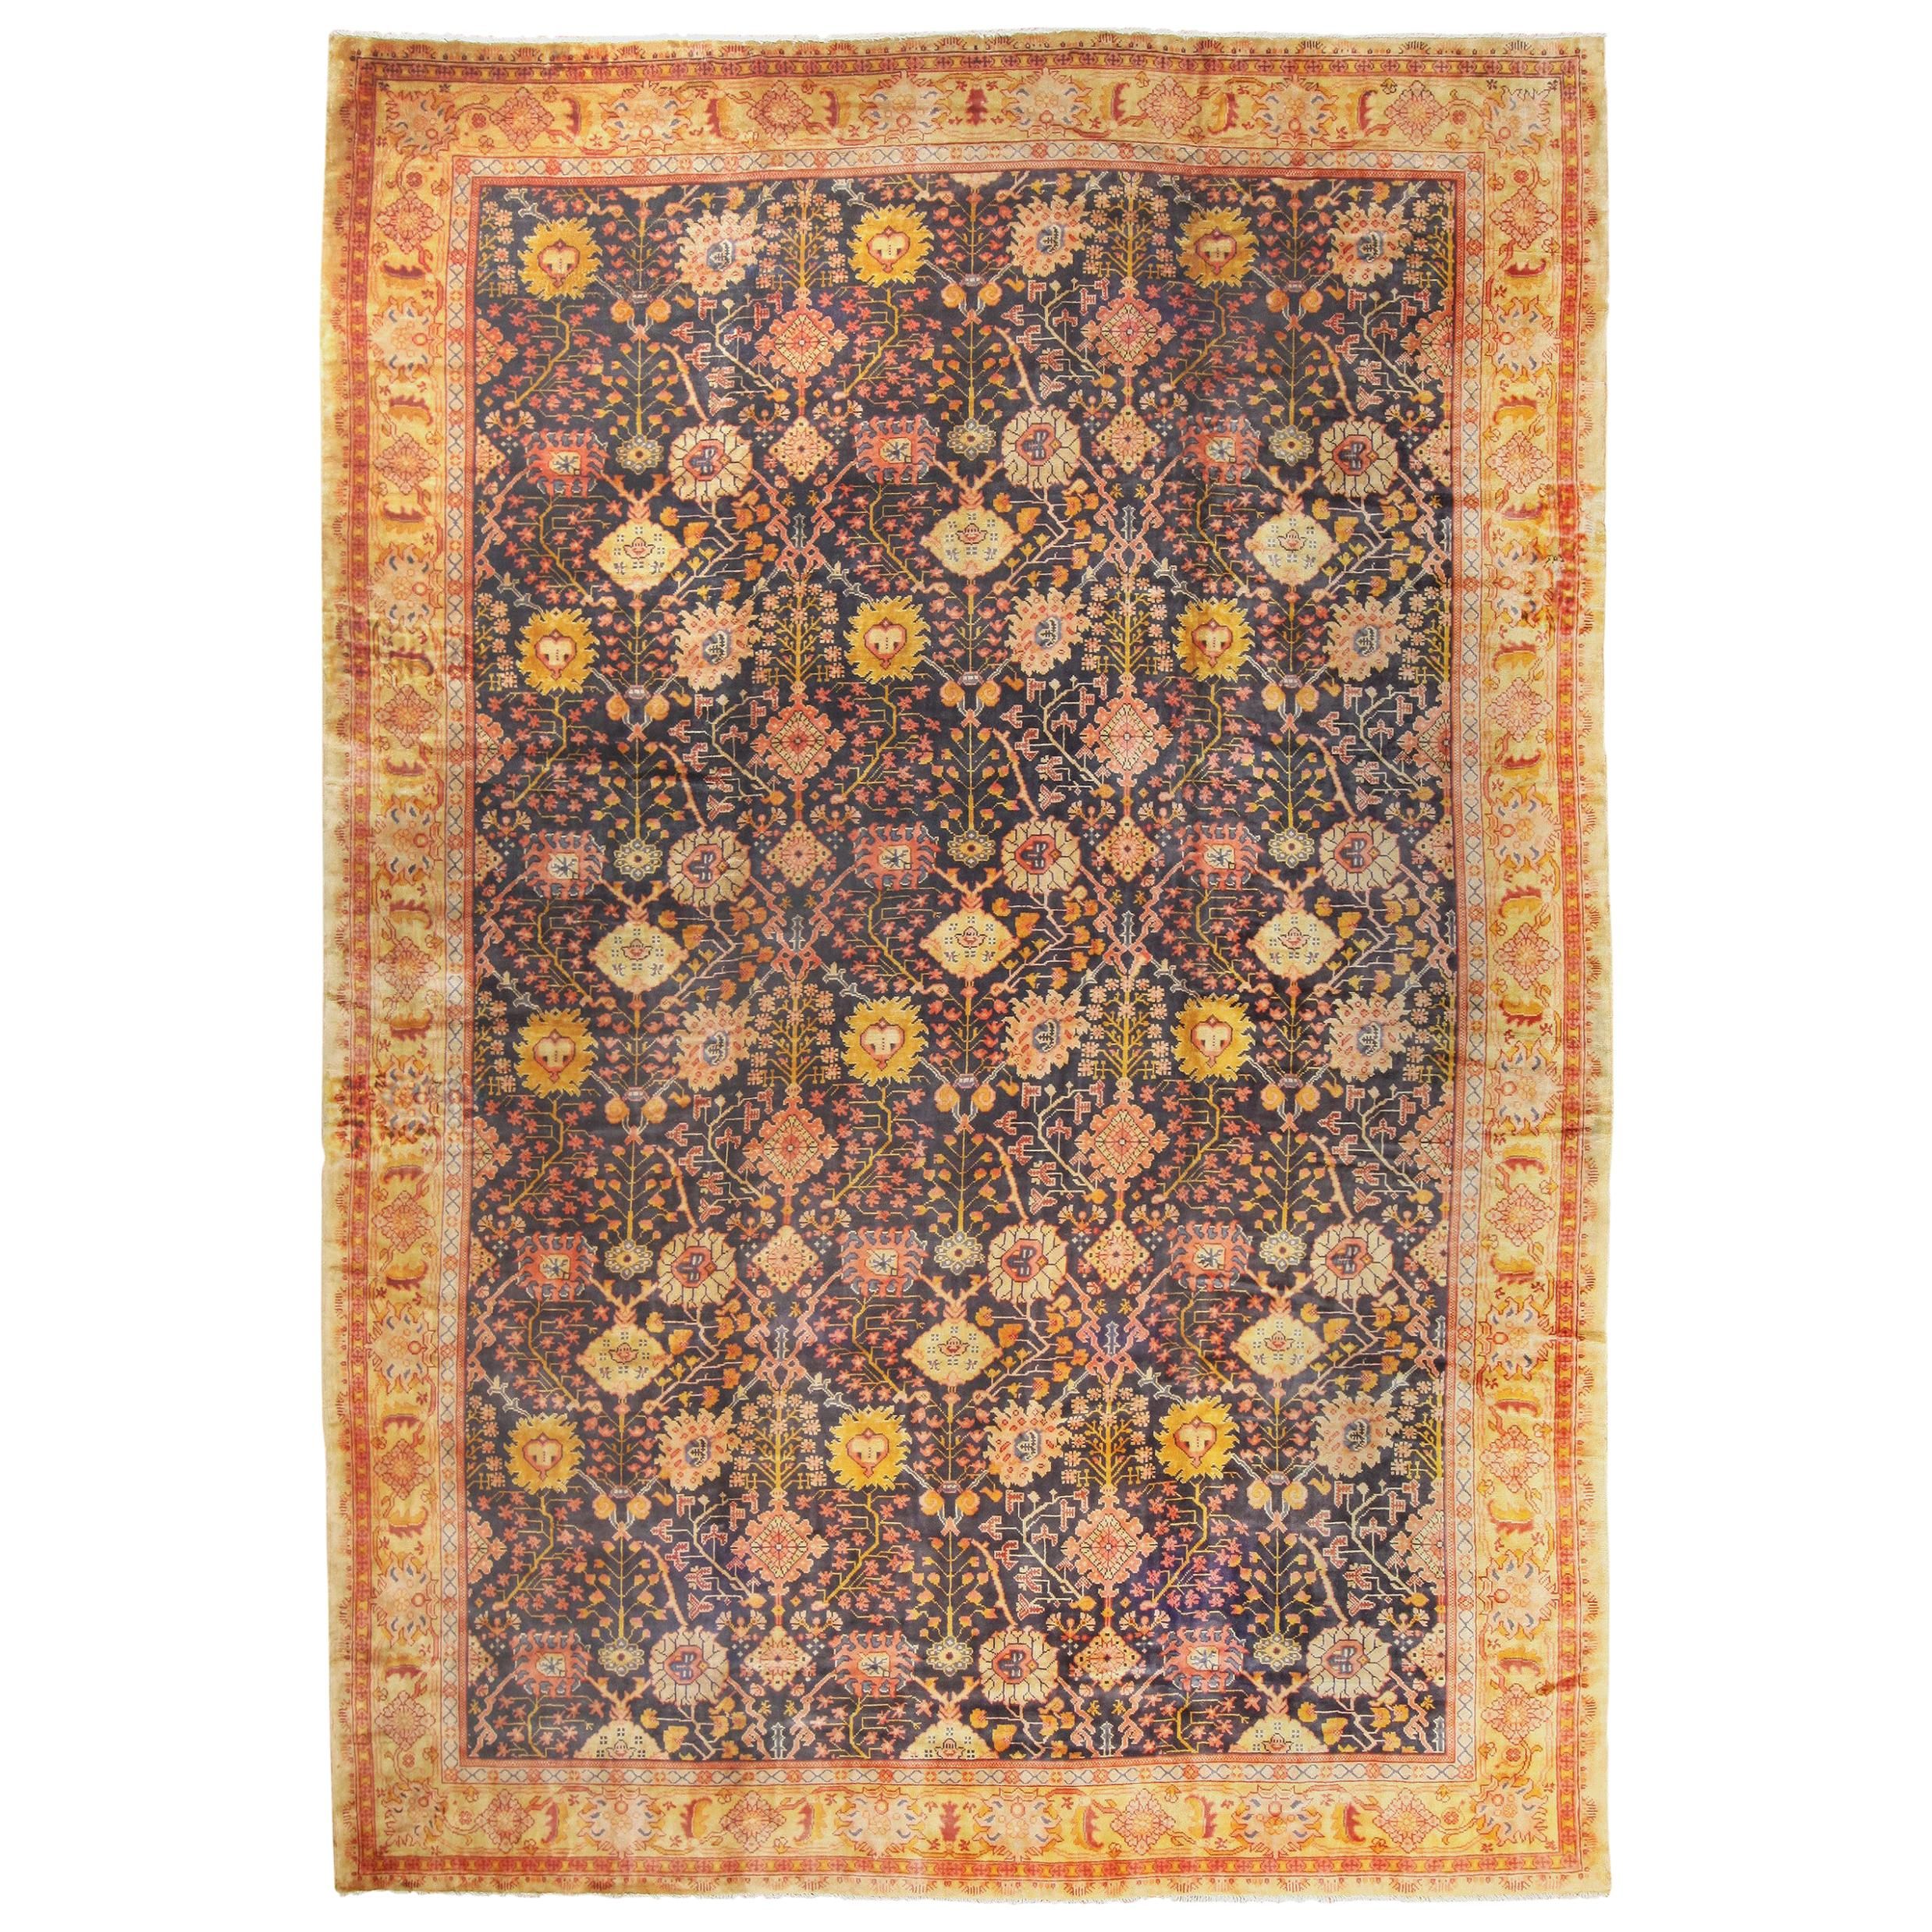 Antique Irish Arts & Crafts Rug. Size: 14 ft x 20 ft 6 in (4.27 m x 6.25 m)